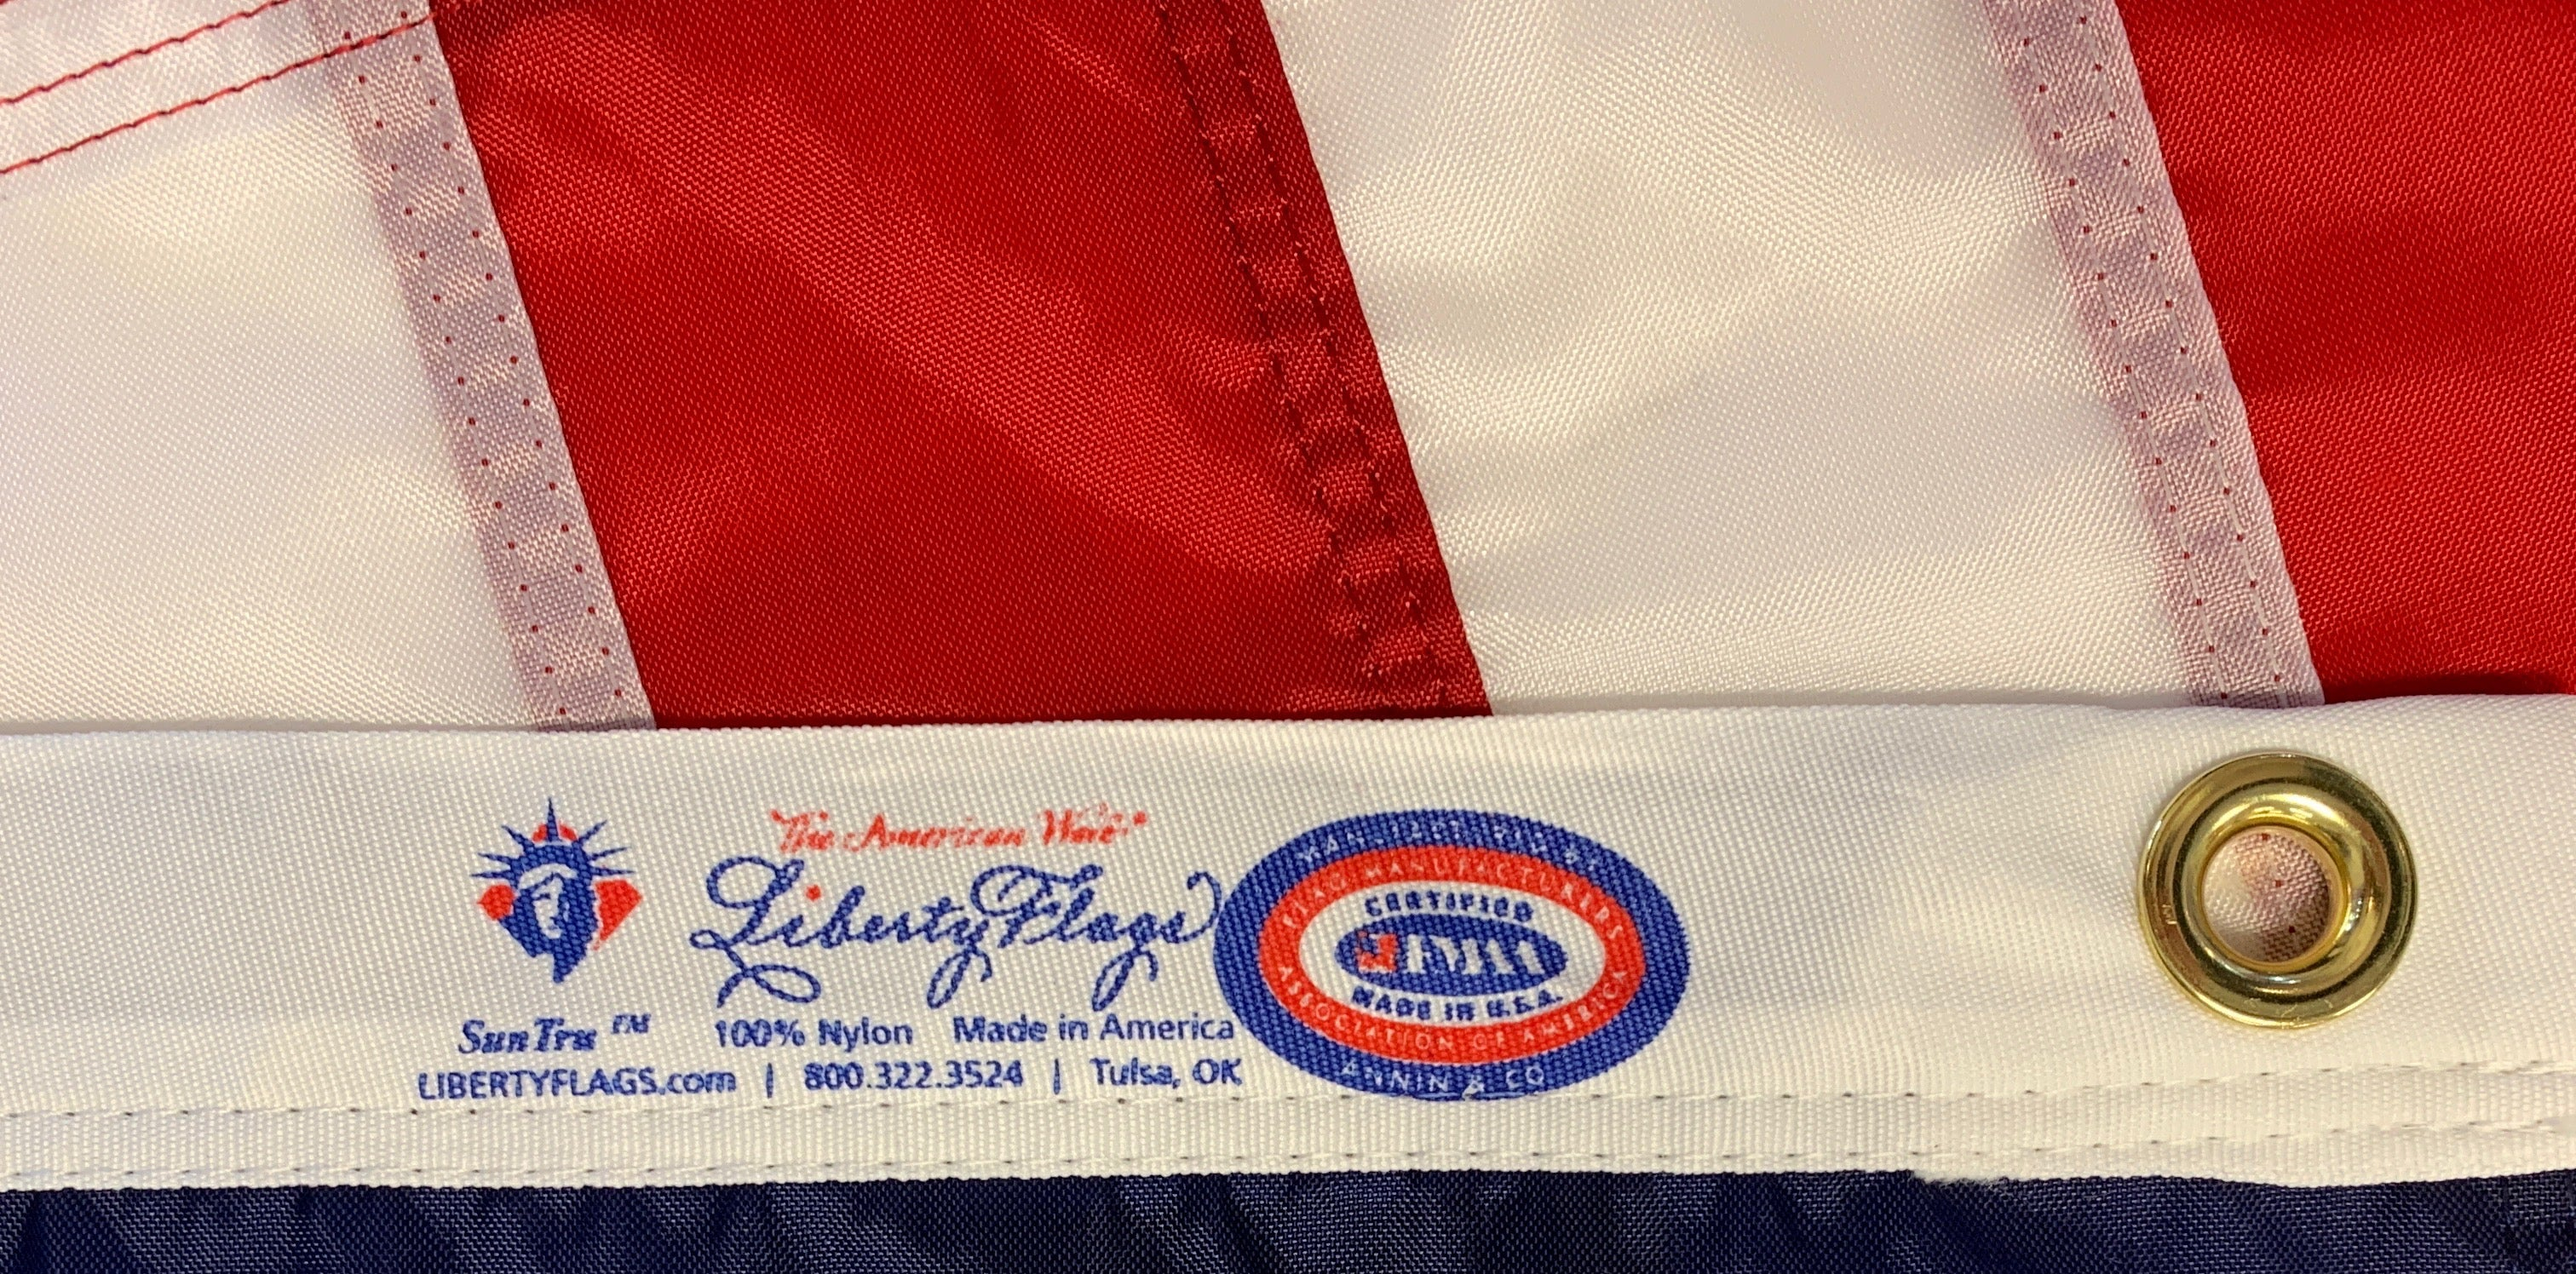 LIBERTY FLAGS, The American Wave® FMAA certification seal image